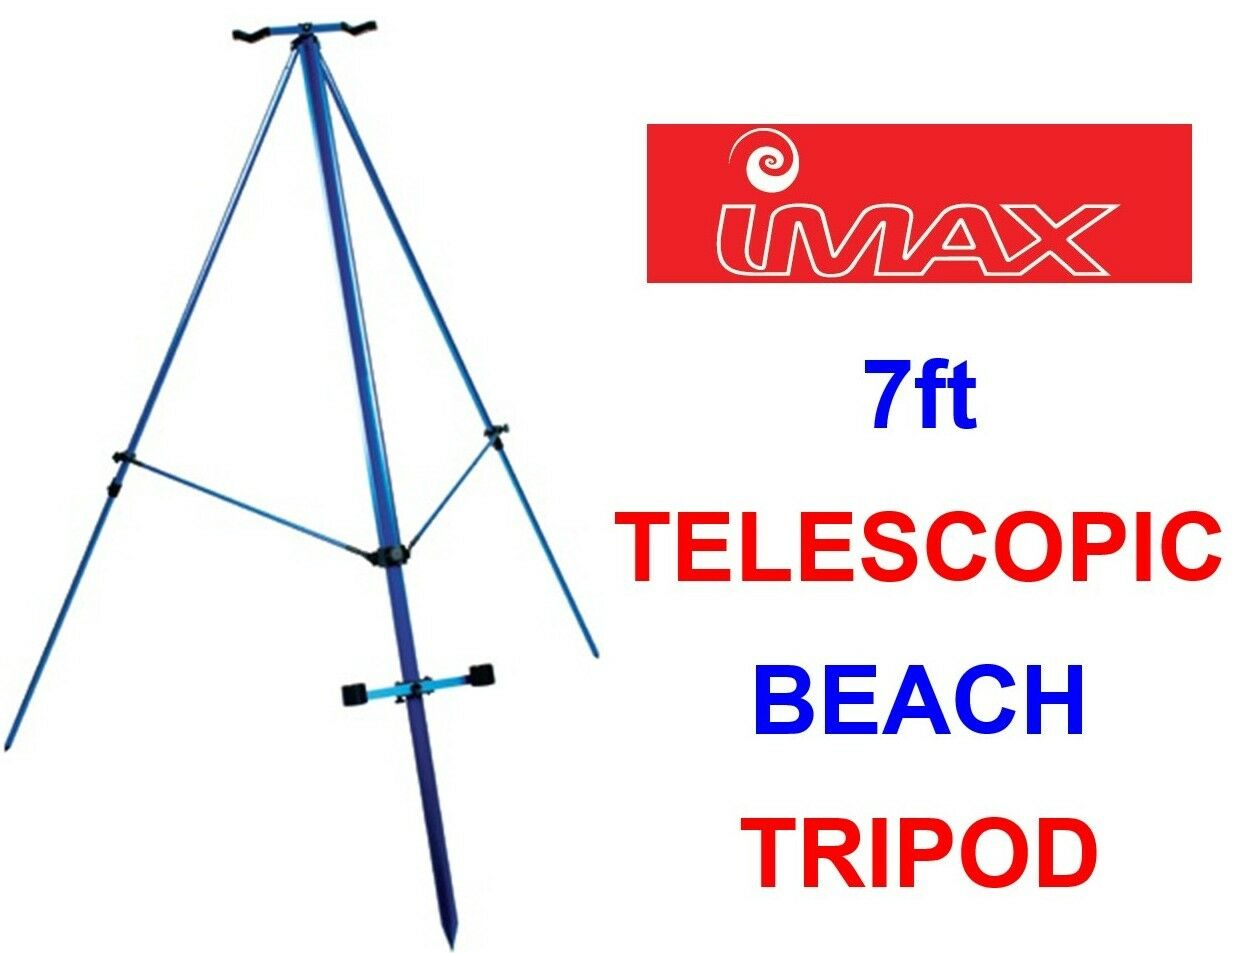 IMAX FR 7ft blueE TELESCOPIC BEACH TRIPOD SEA FISHING BEACHCASTER ROD REST STAND